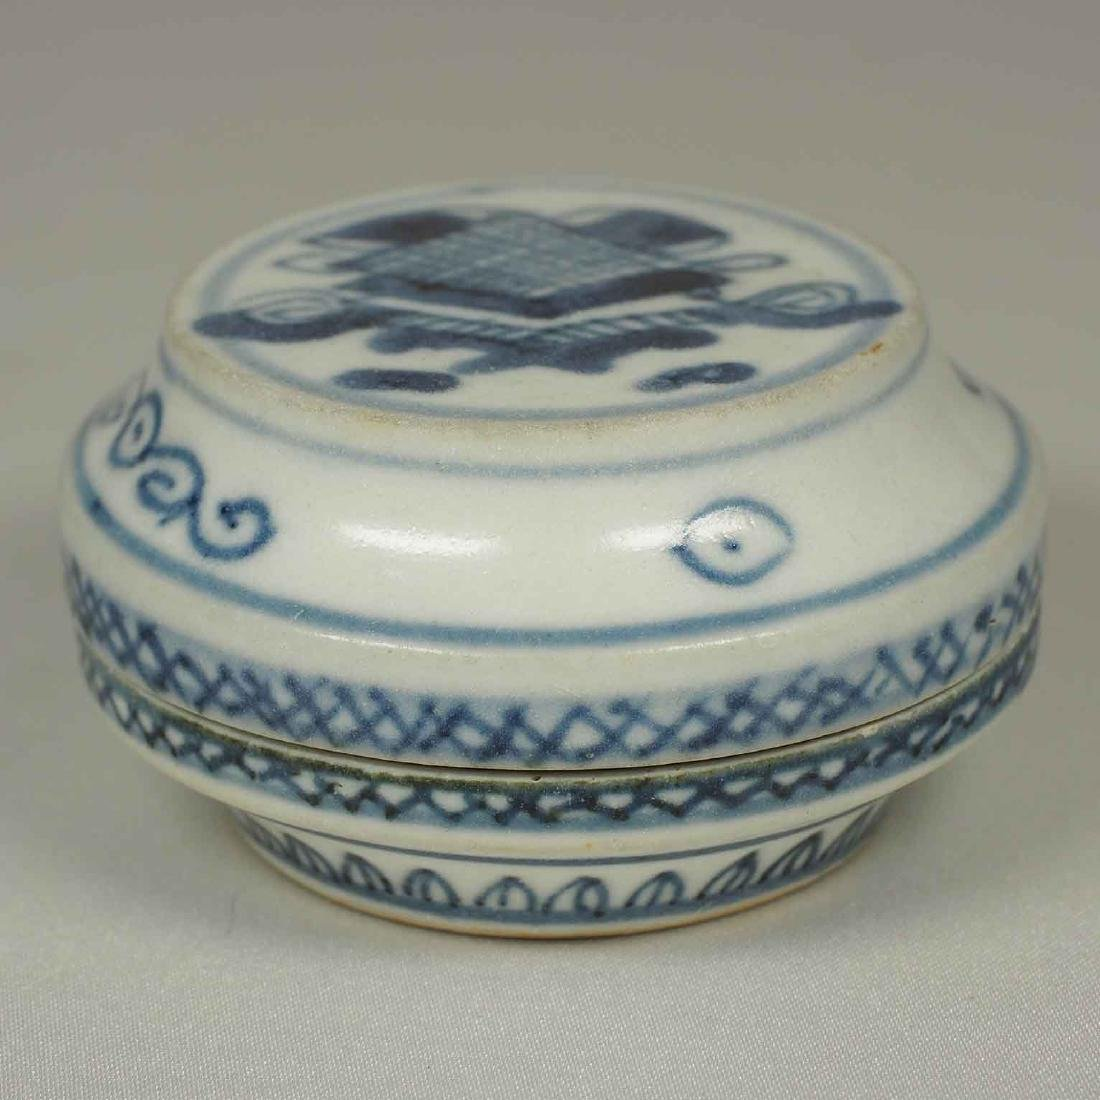 Box with Wicker Pattern, Qing Dynasty